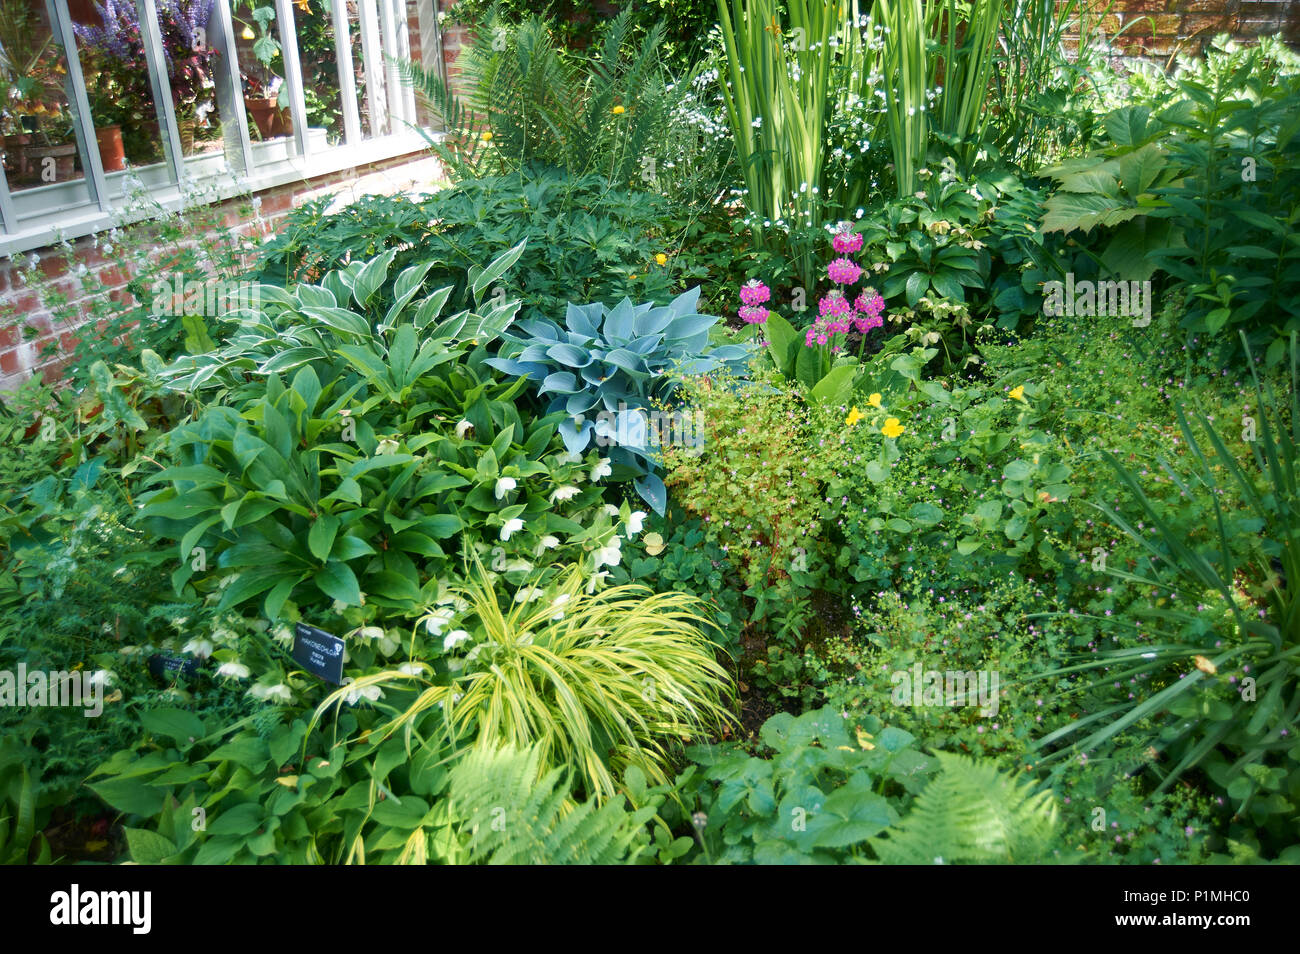 Ferns Hostas And An Assortment Of Shade Loving Plants Growing On